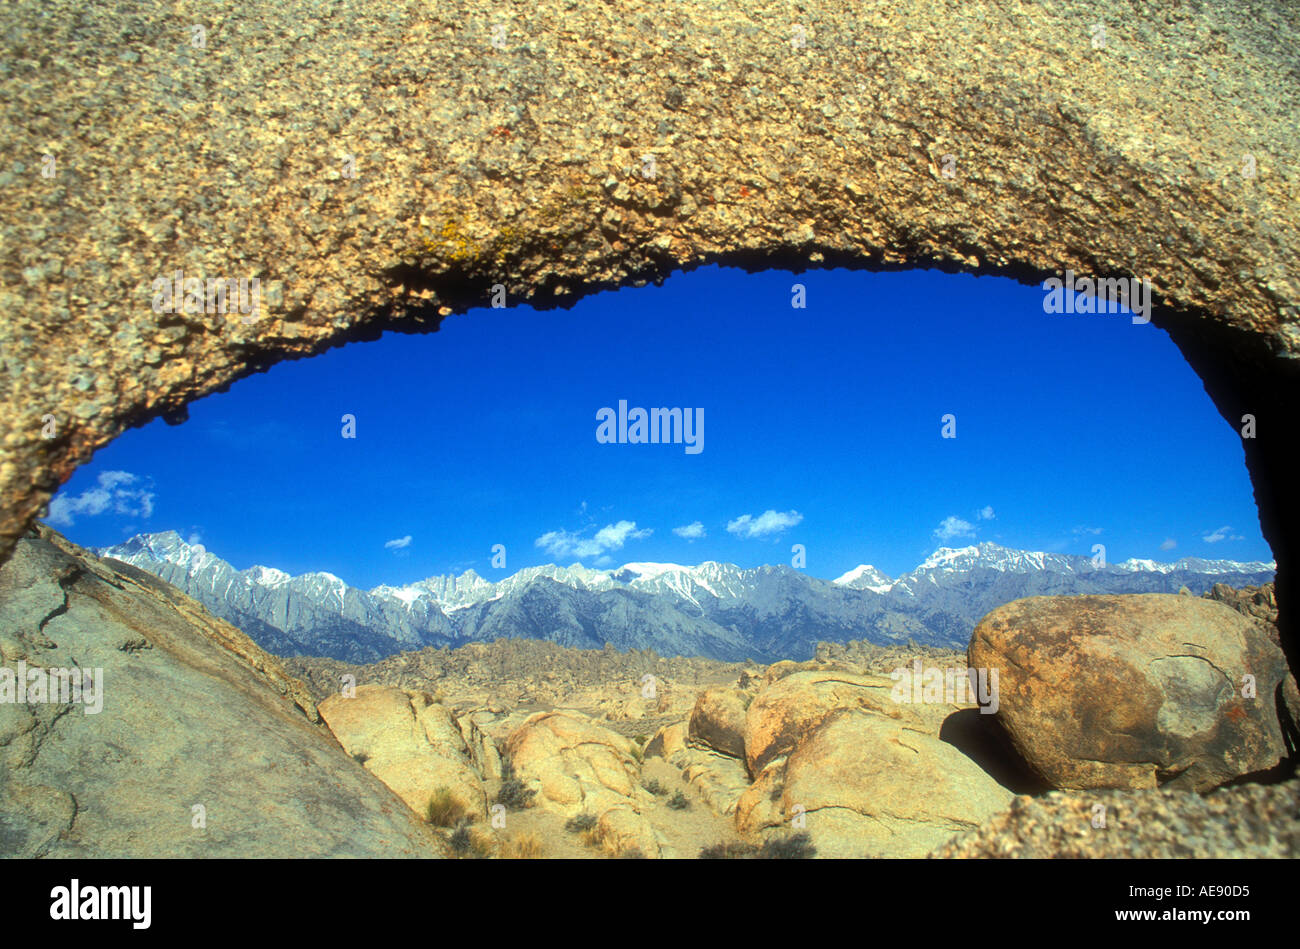 View through archway at Mount Whitney in the Eastern Sierra Nevada mountains rising above the Alabama Hills in California - Stock Image